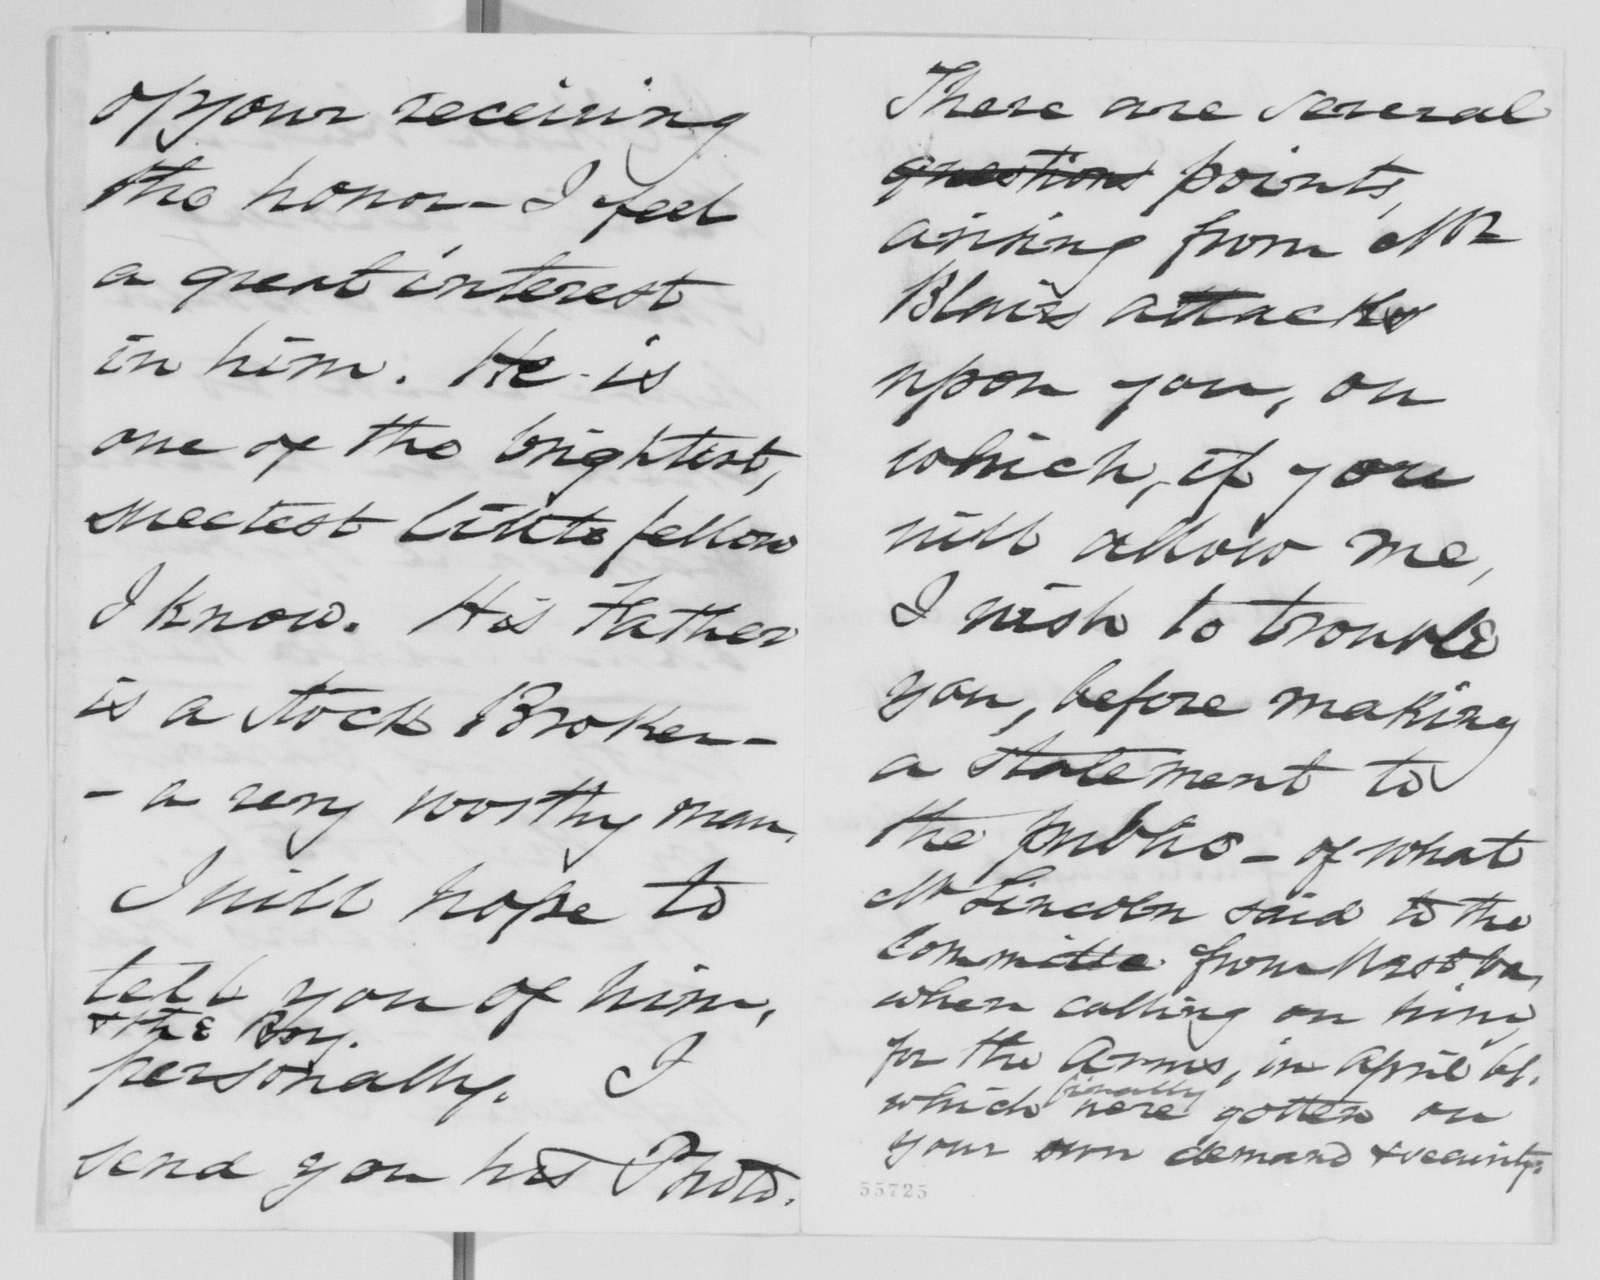 Edwin McMasters Stanton Papers: Correspondence, 1831-1870; 1865; 1865, Sept. 27-1866, Mar. 9